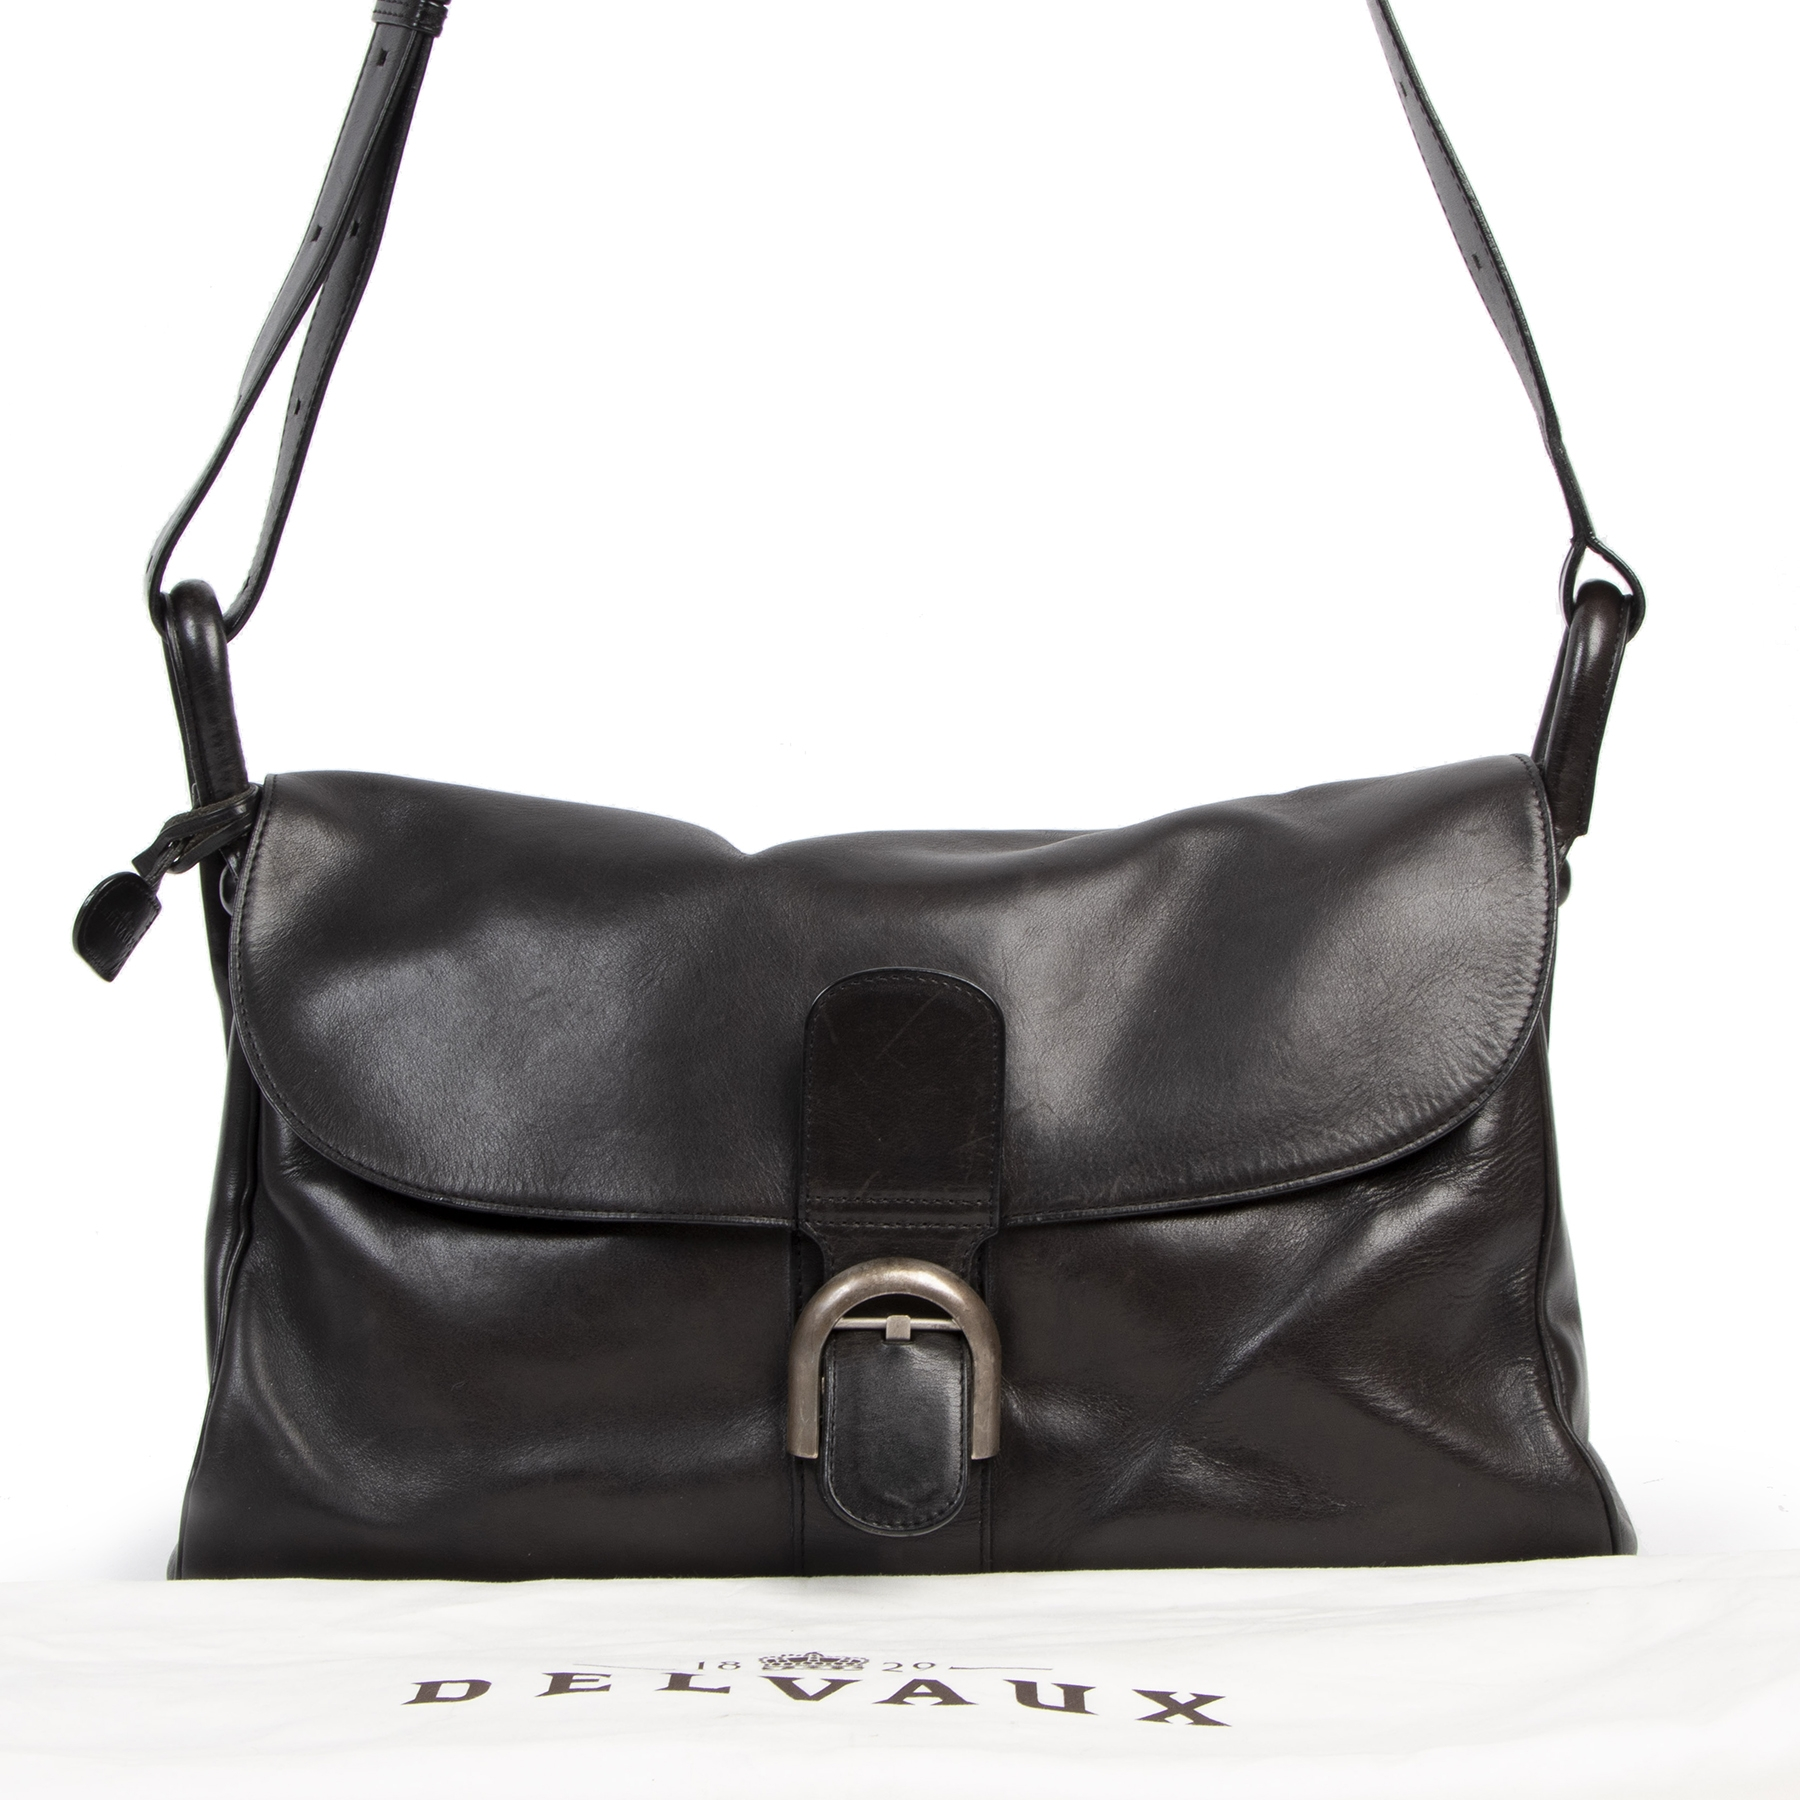 Authentic second-hand vintage Delvaux Black Brillant Besace Shoulder Bag buy online webshop LabelLOV